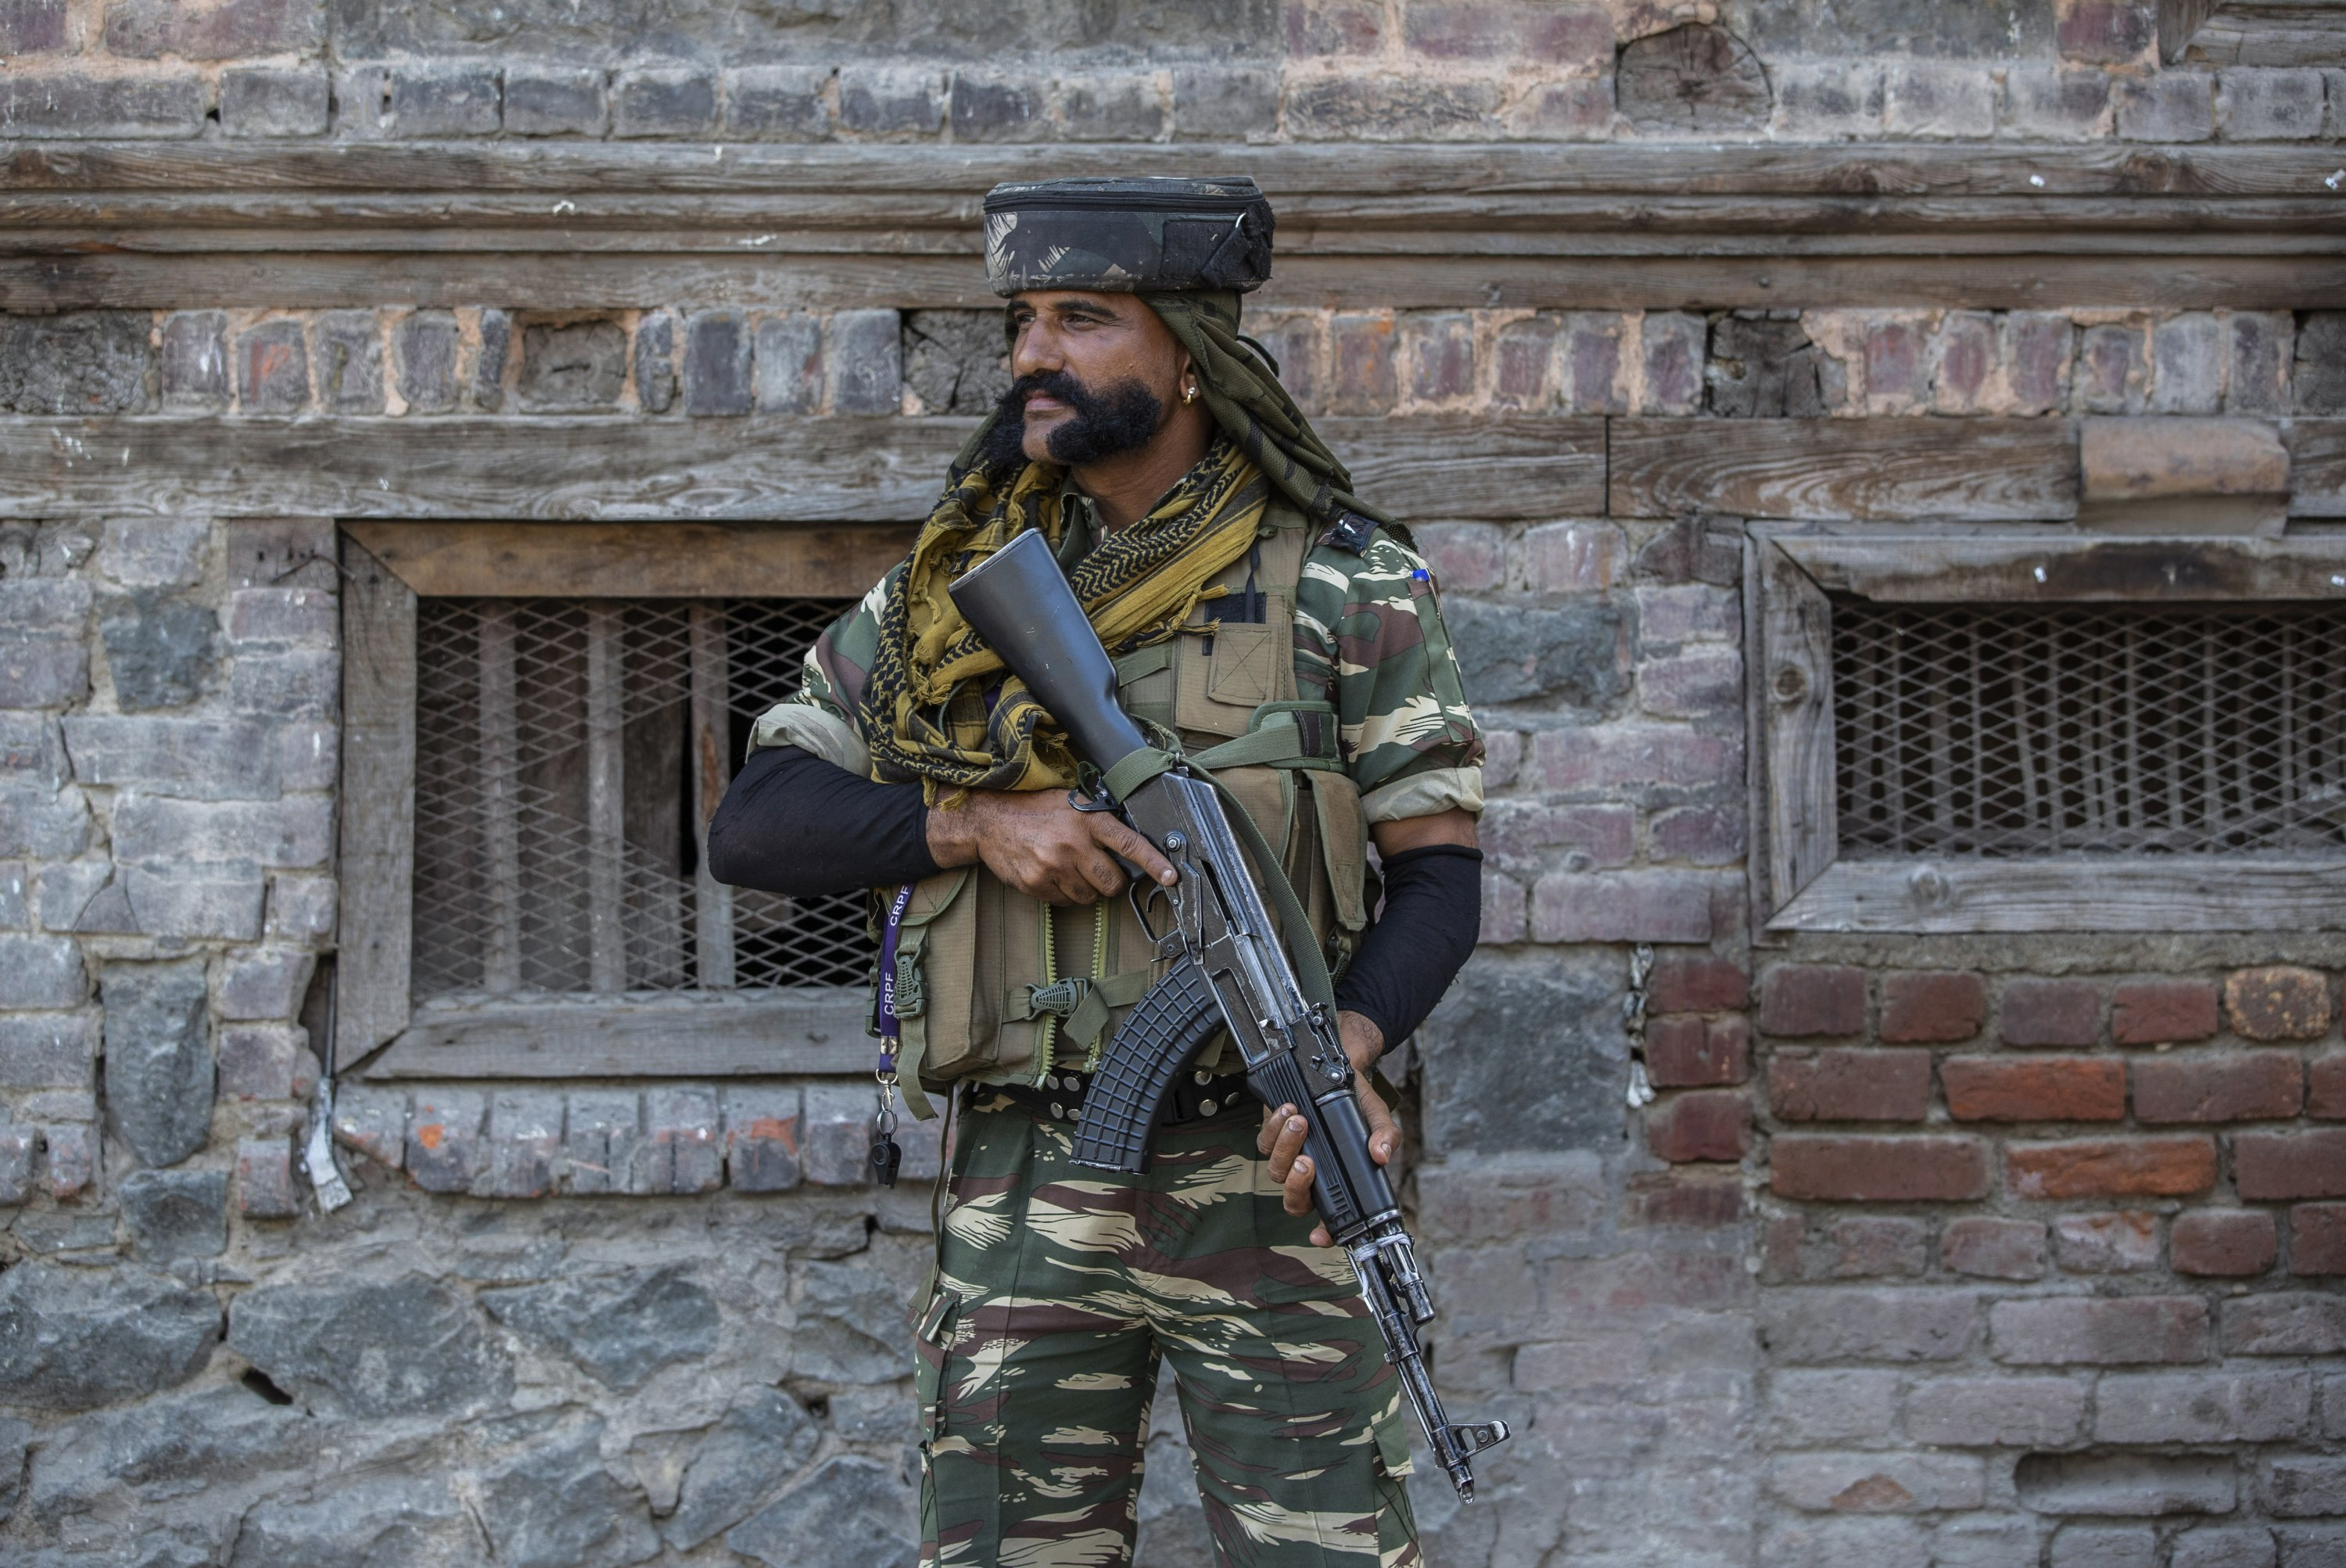 An Indian paramilitary soldier guards a deserted street in Srinagar, Indian-controlled Kashmir, Sept. 5, 2021. (AP Photo)